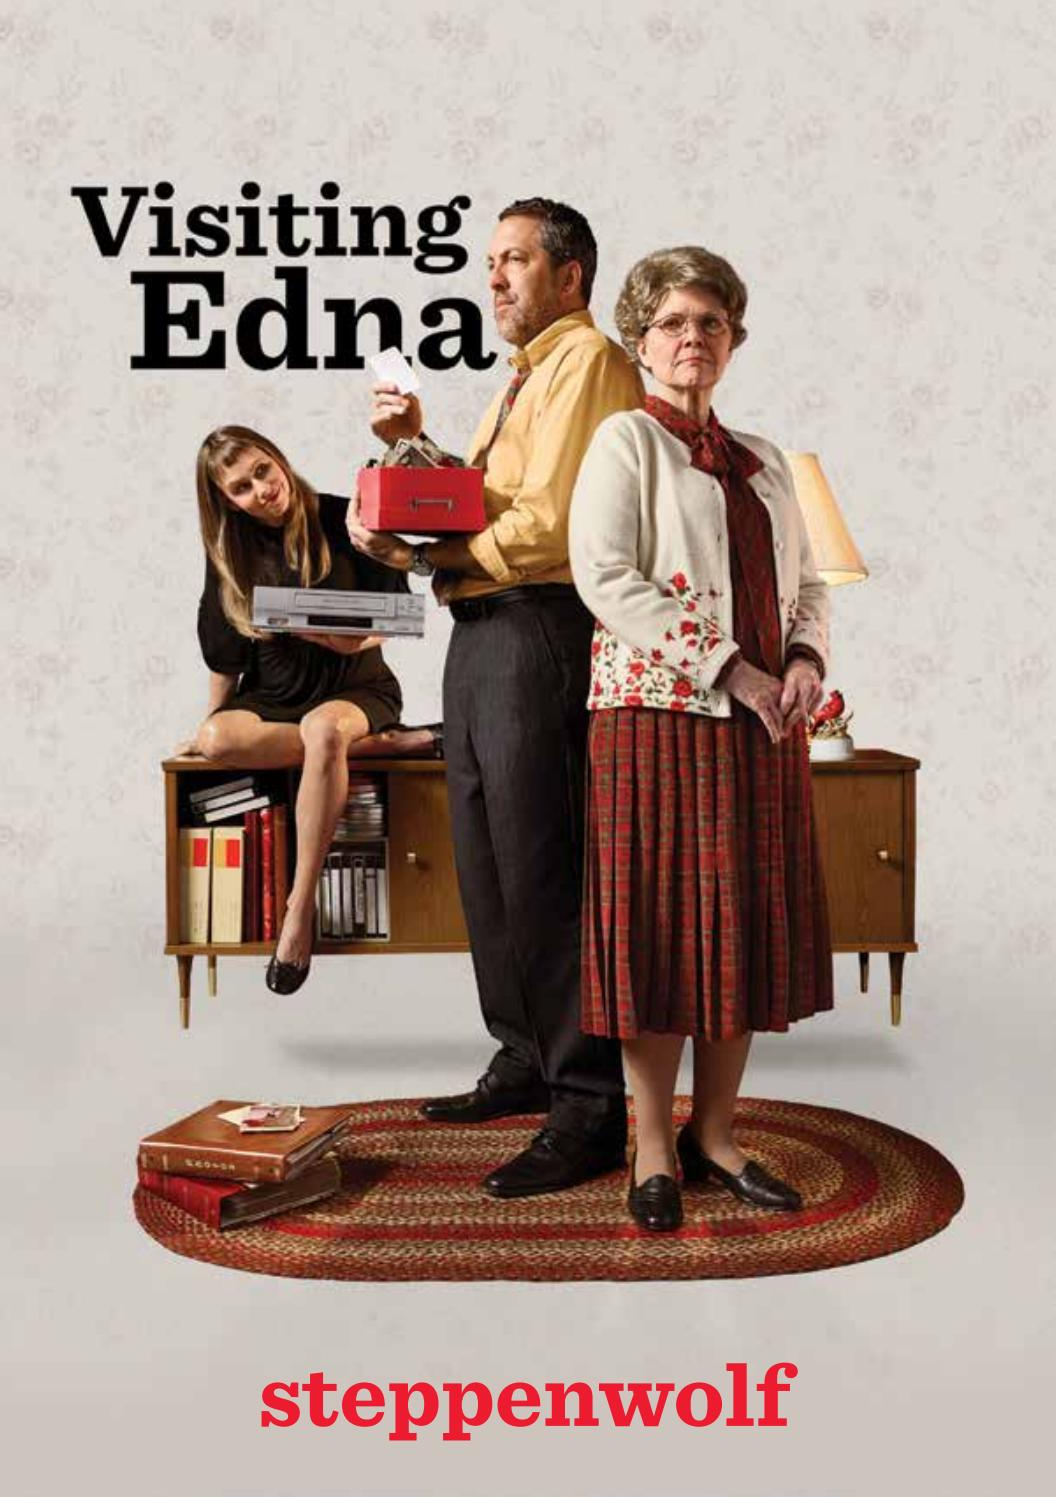 visiting edna program by steppenwolf theatre company issuu